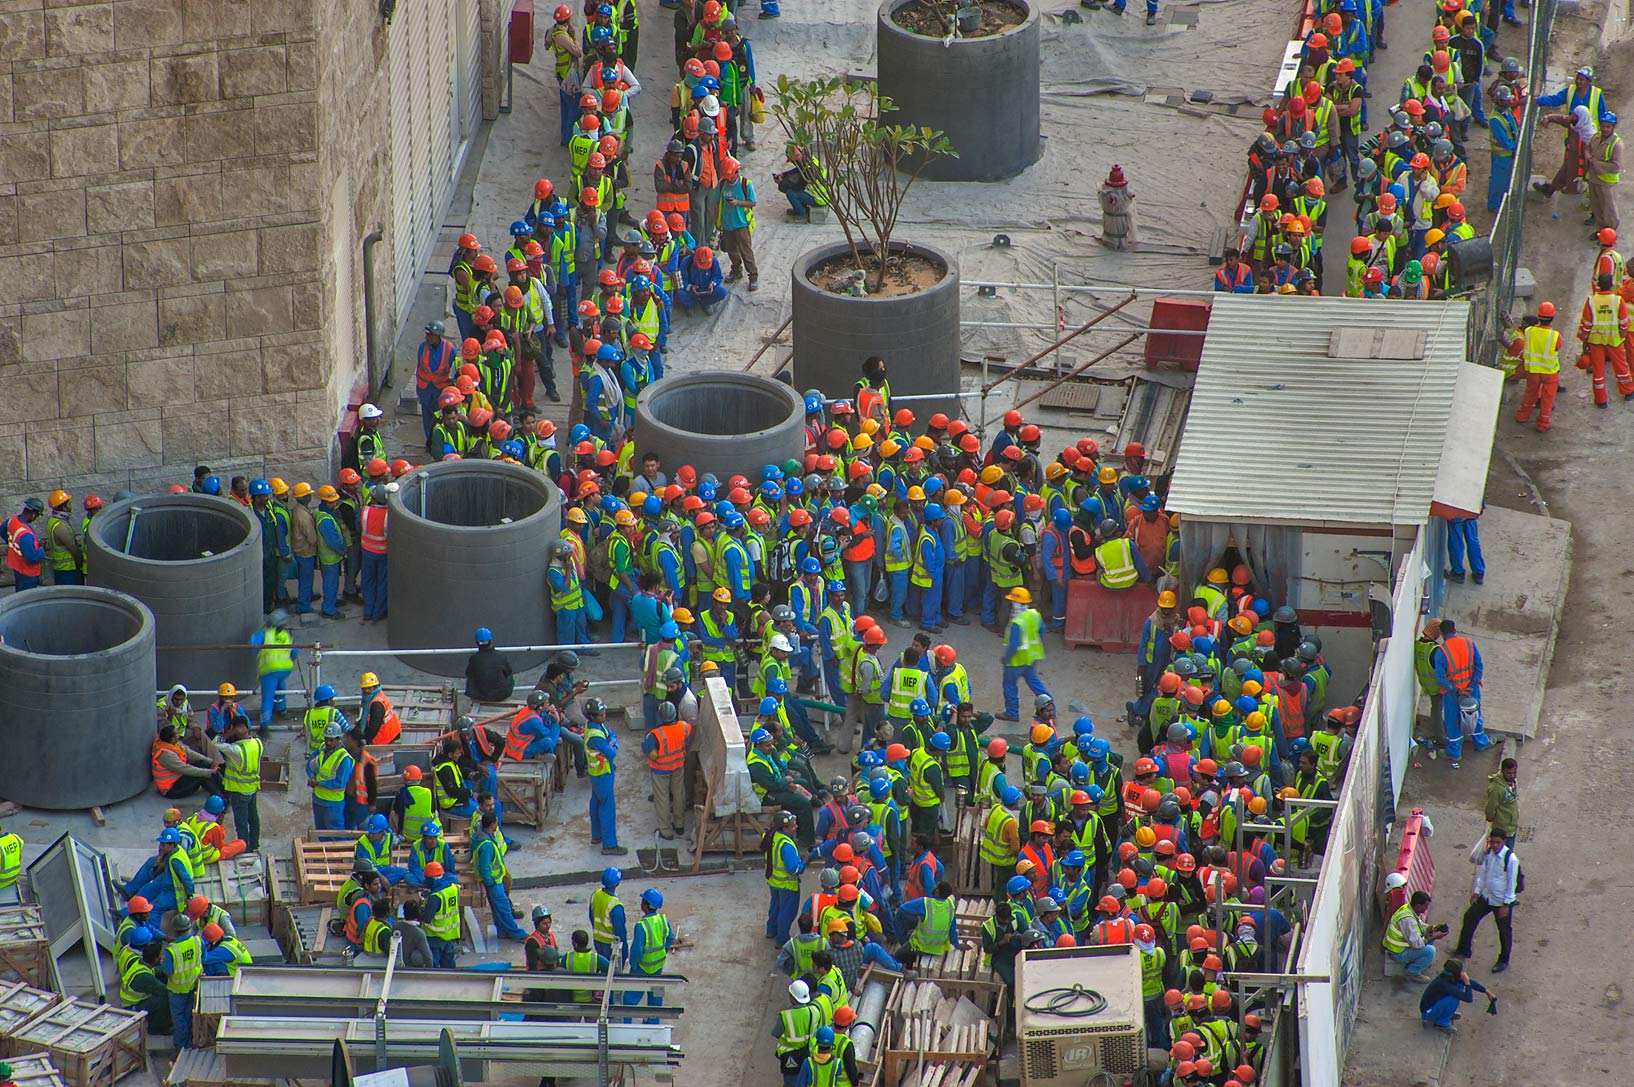 Workers crowding at exit of construction of Qatar...1-2244 of Ezdan Hotel. Doha, Qatar